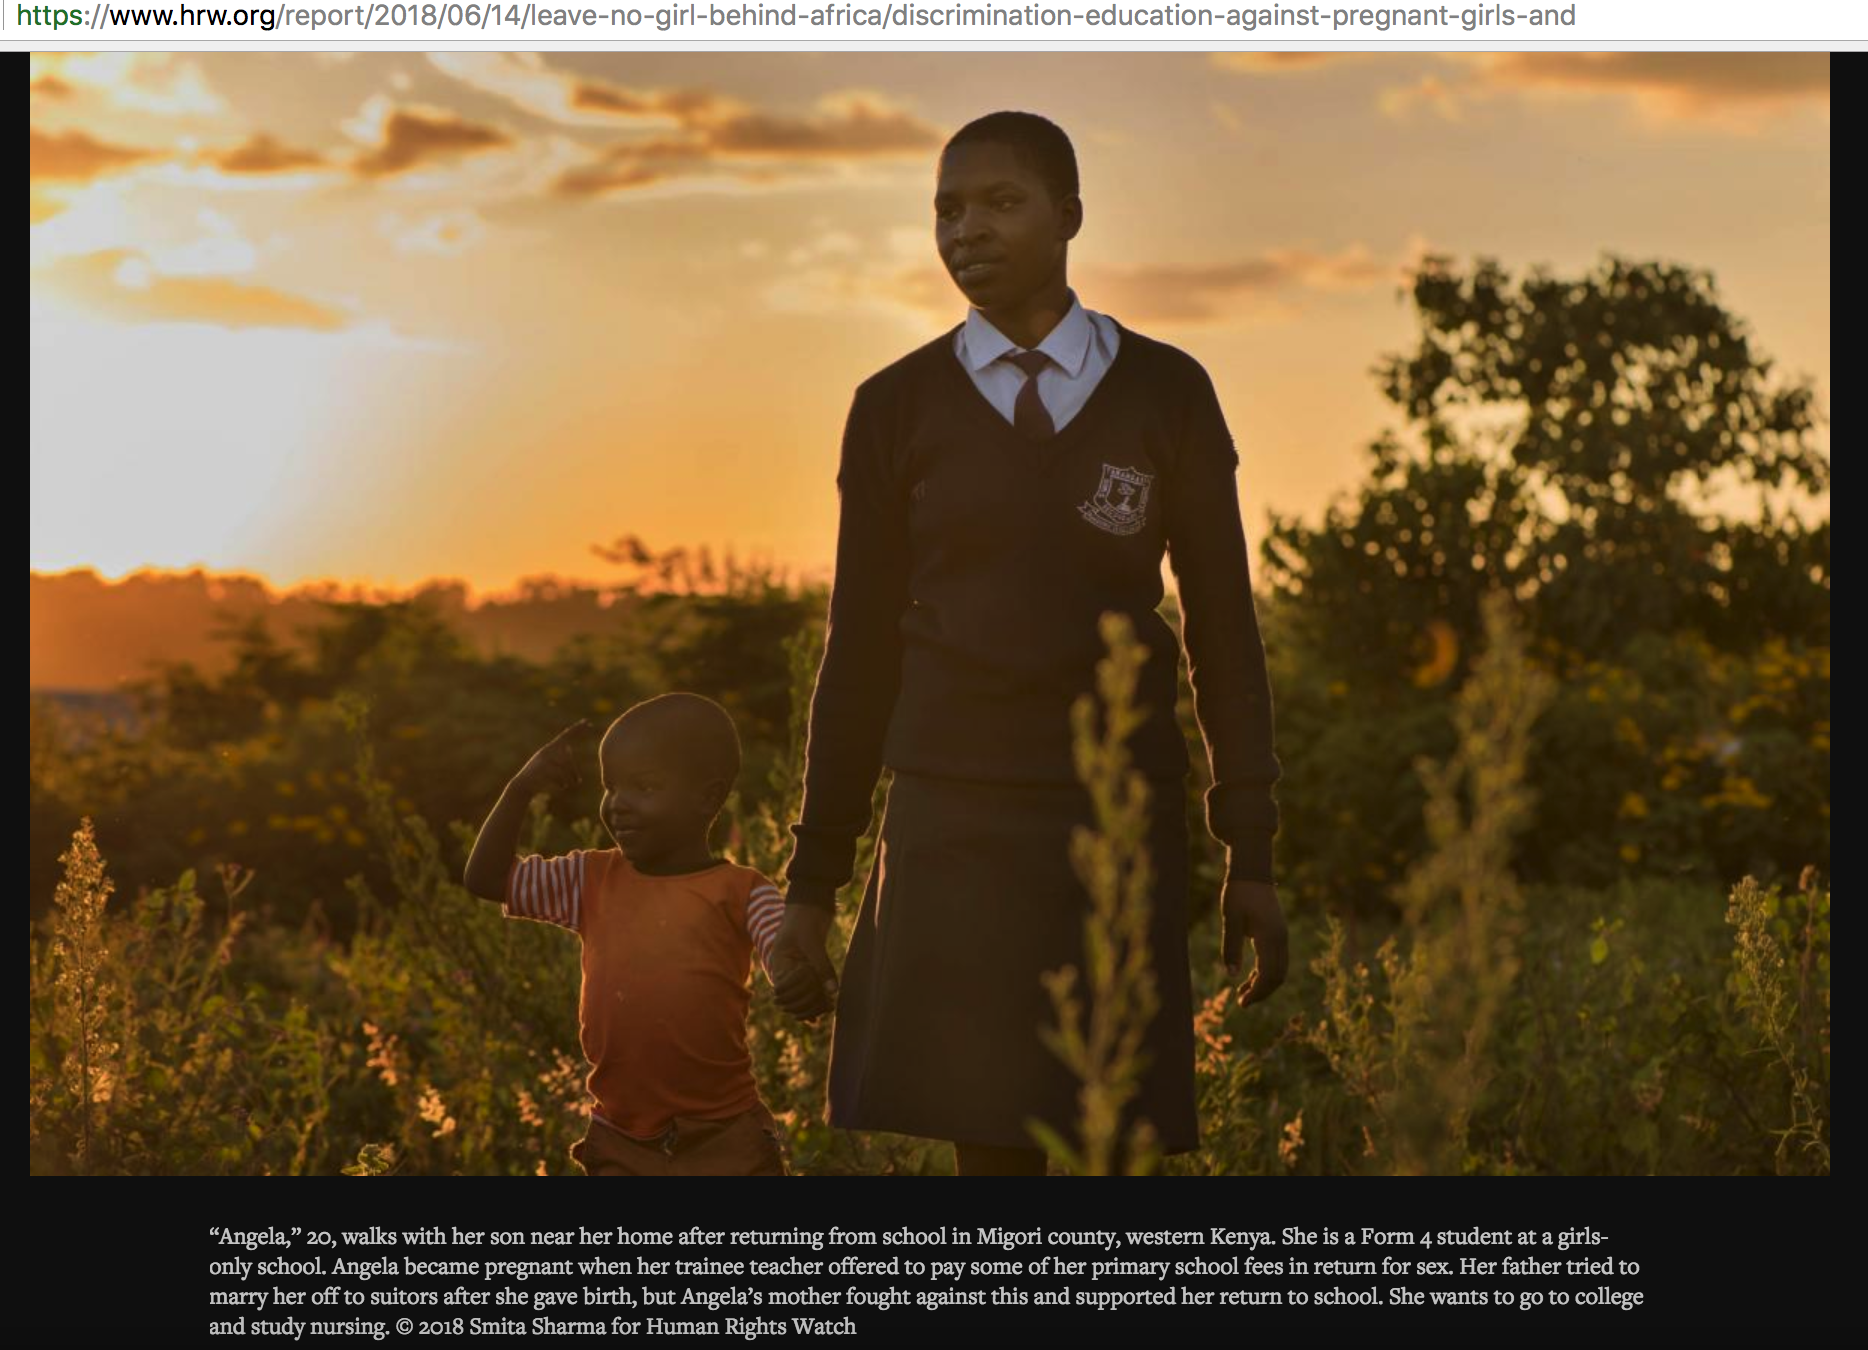 https://www.hrw.org/report/2018/06/14/leave-no-girl-behind-africa/discrimination-education-against-pregnant-girls-and